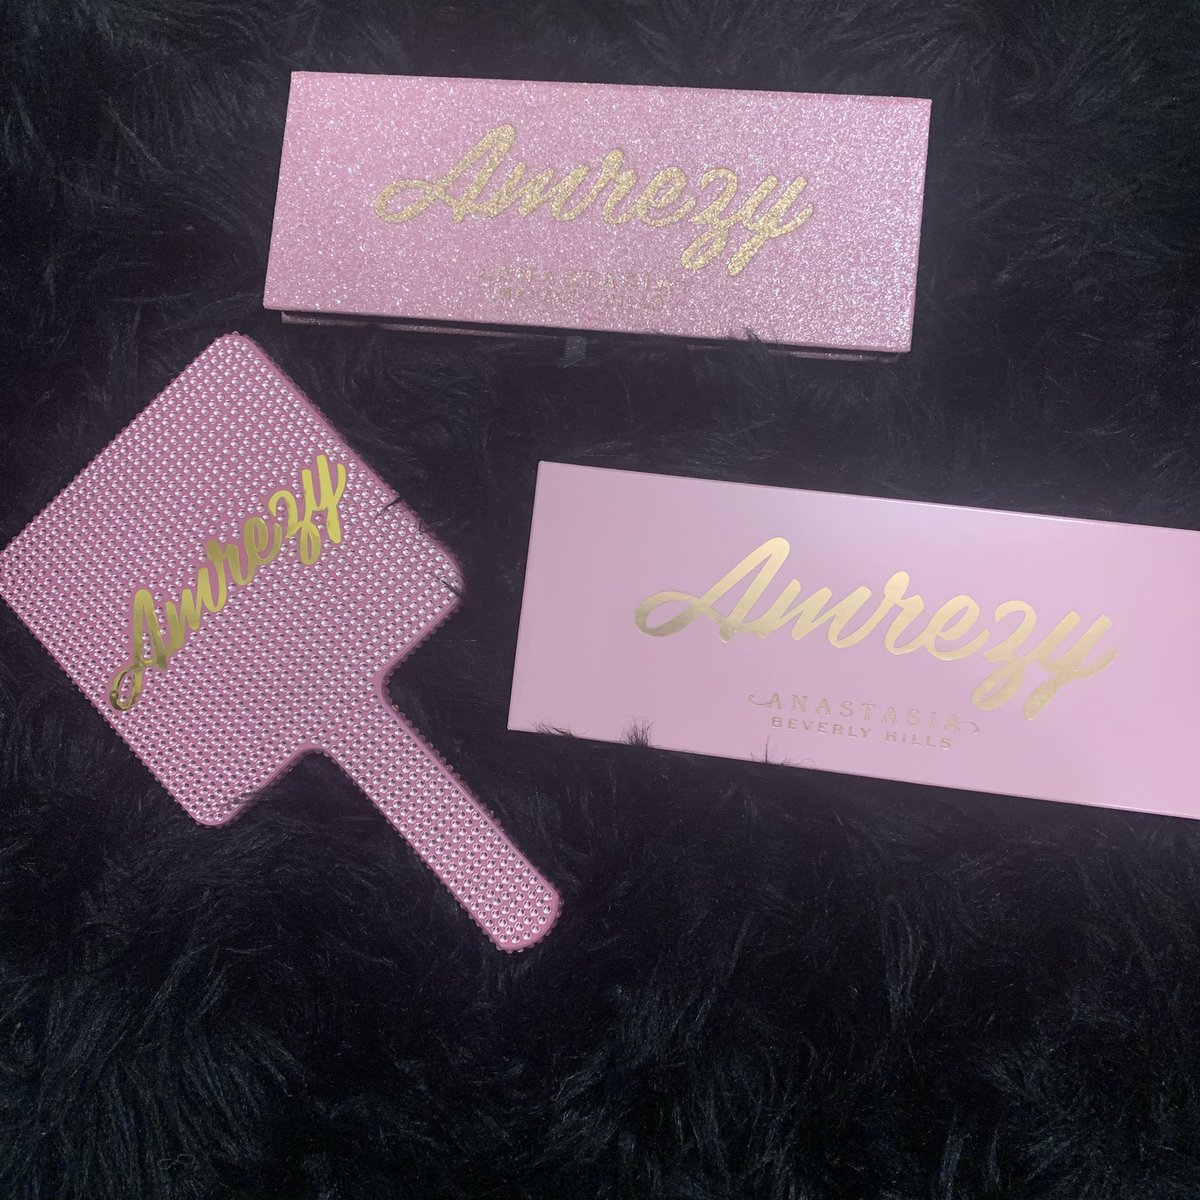 literally my number 1 go to right now! #amrezypalette #abhpic.twitter.com/XtDz69BmbM